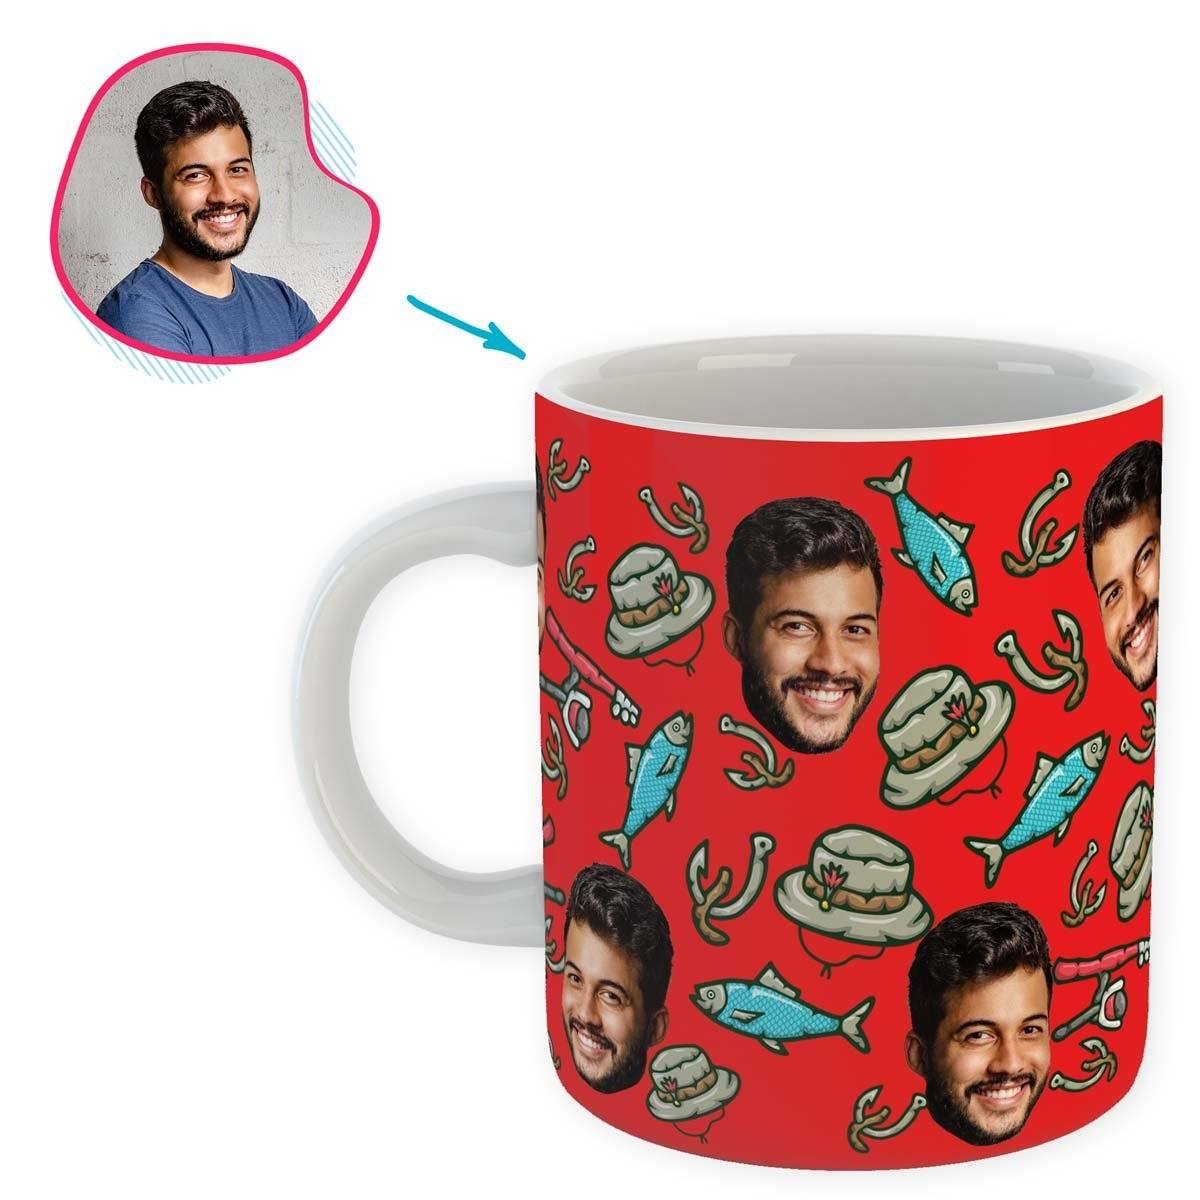 Red Fishing personalized mug with photo of face printed on it